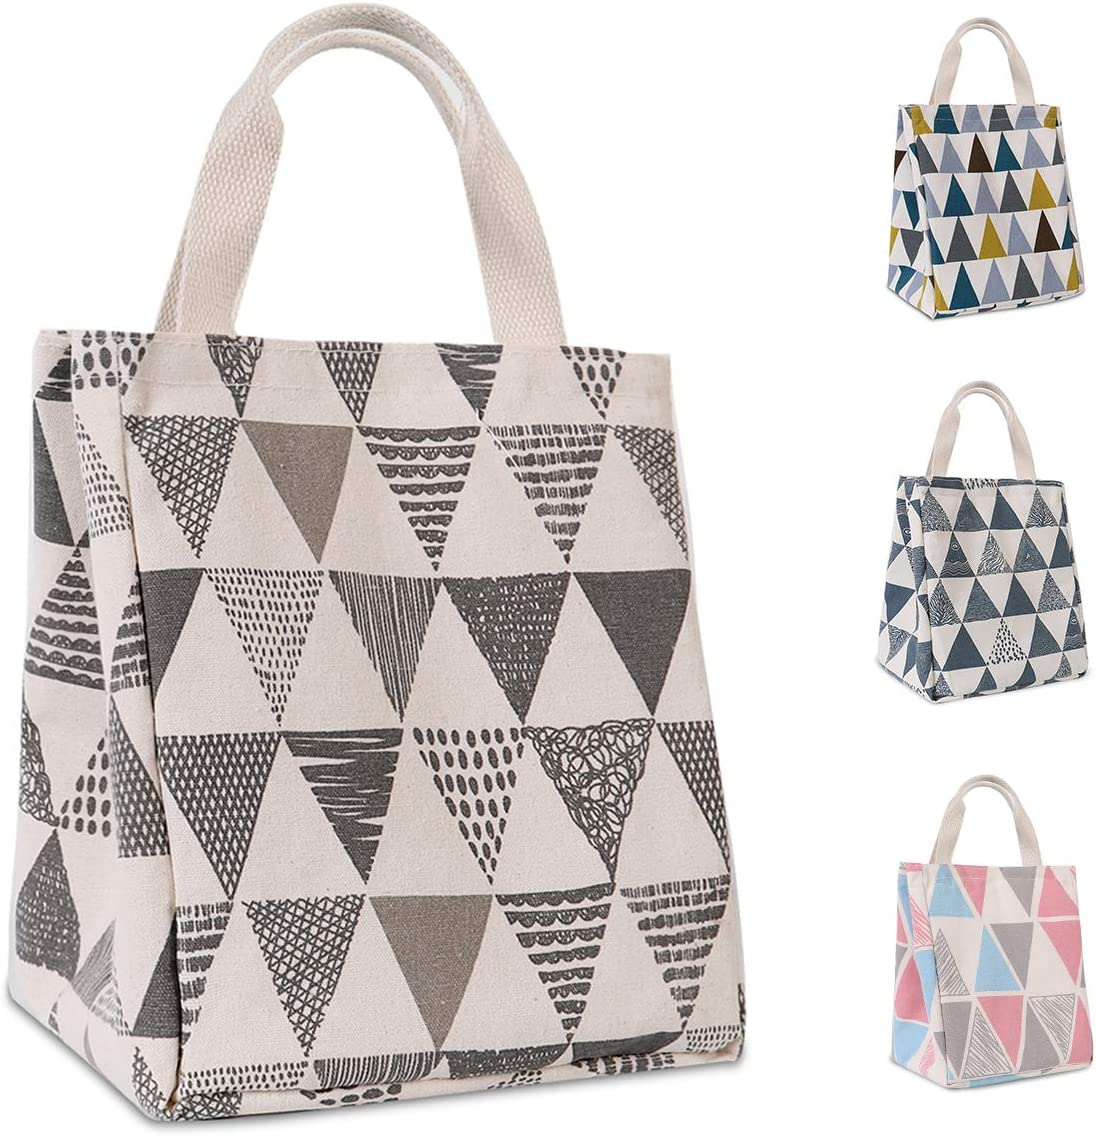 HOMESPON Reusable Lunch Bag Insulated Lunch Box Cute Canvas Fabric with Aluminum Foil, Printed Lunch Tote Handbag Fordable for Women,Men,School, Office (Triangle Pattern-Grey)